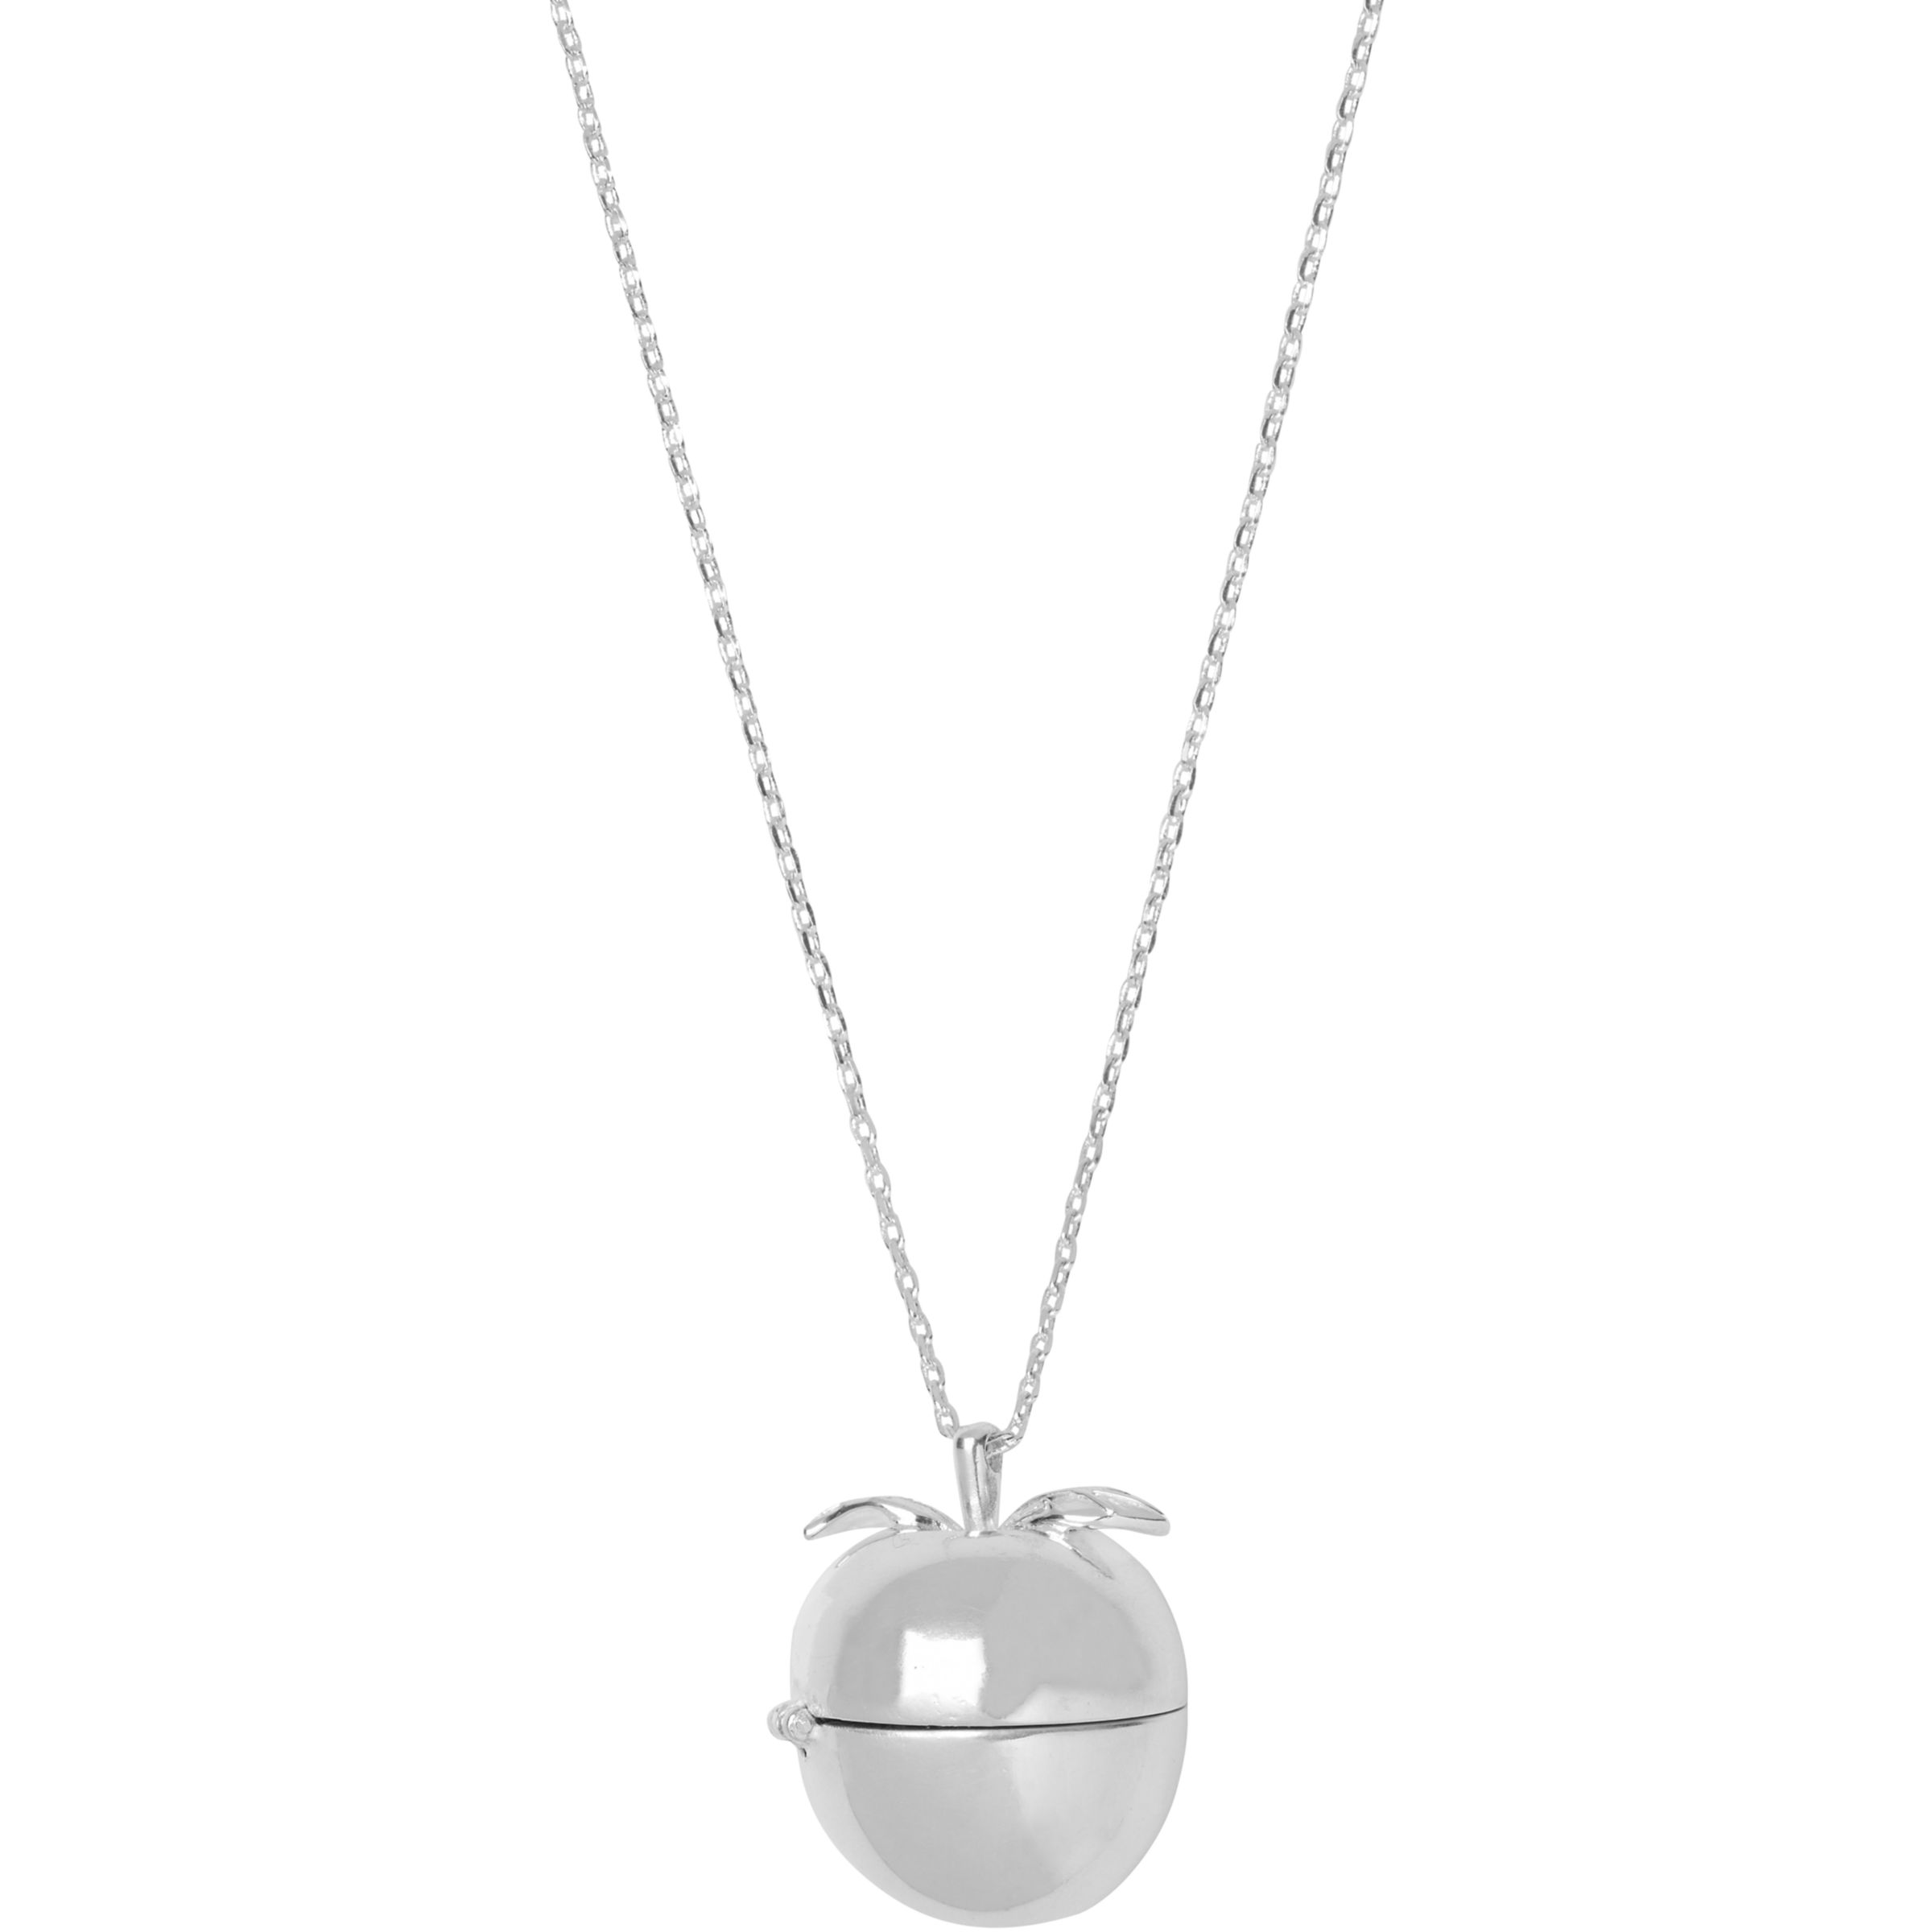 Renaissance Life Apple Pendant Necklace